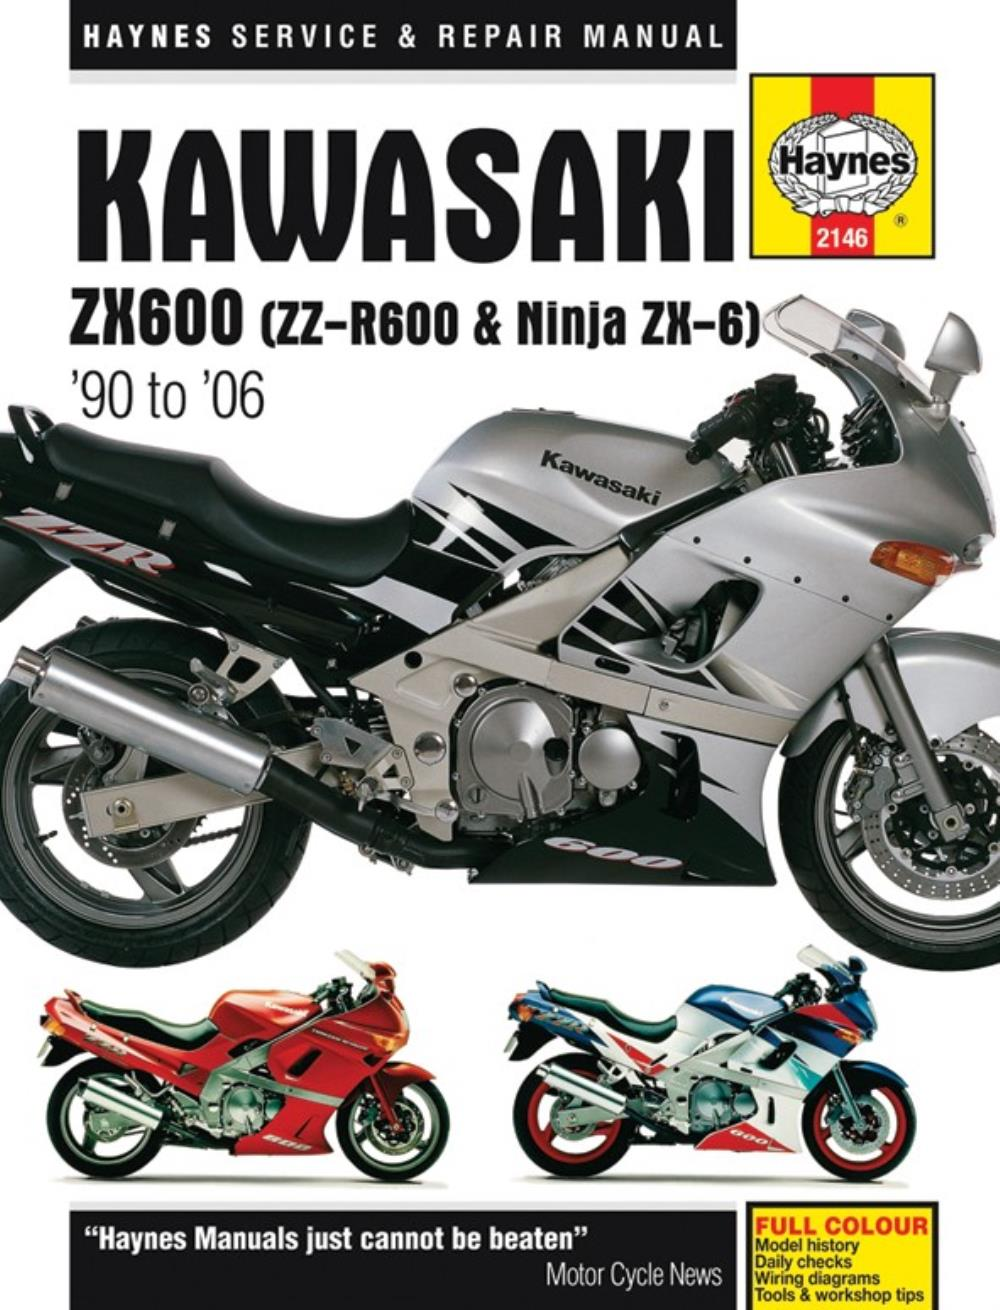 1992 Kawasaki 600 Wiring Diagram Electrical Diagrams Manual Haynes For Zzr Zx600d3 Ebay Prairie 360 Parts